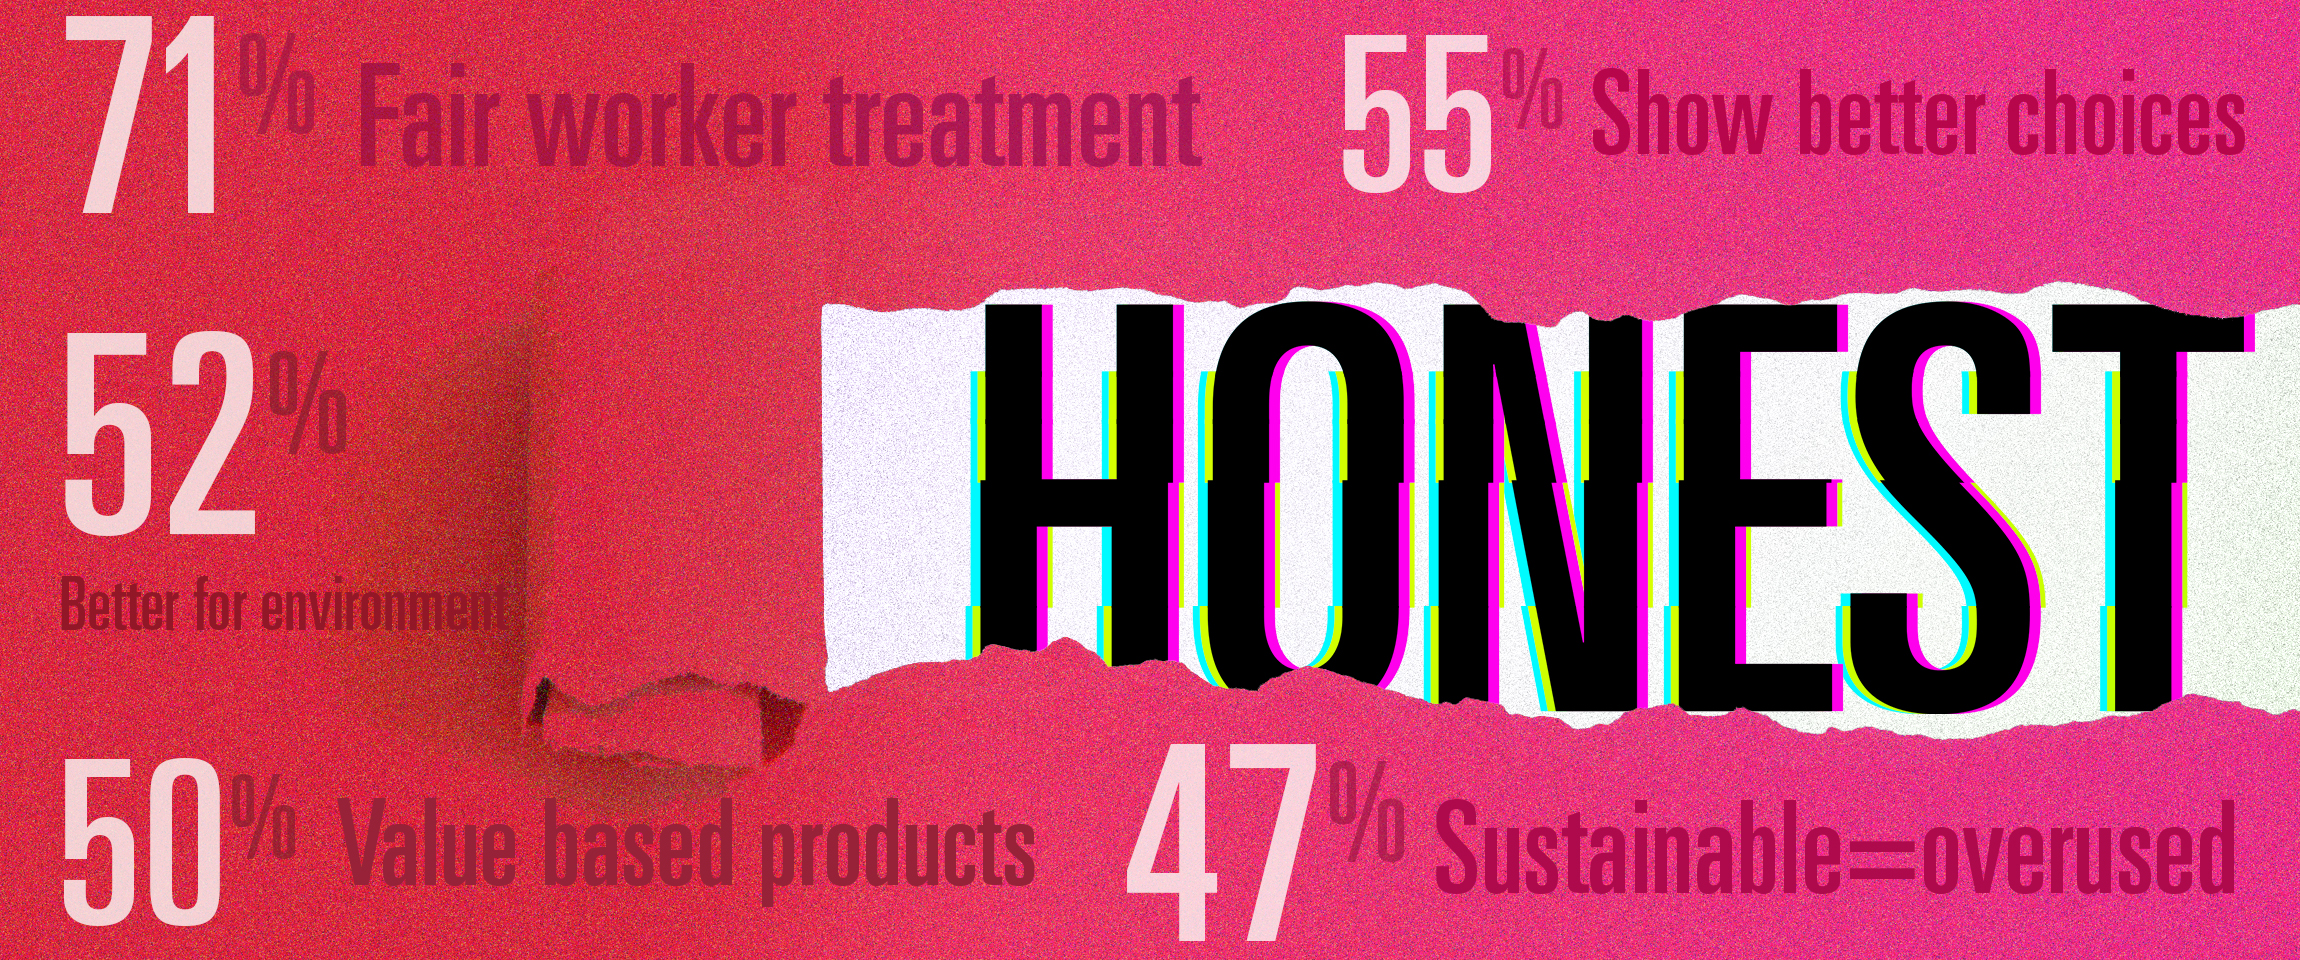 Are You Honest Enough for Shoppers? 5 Steps to Get There